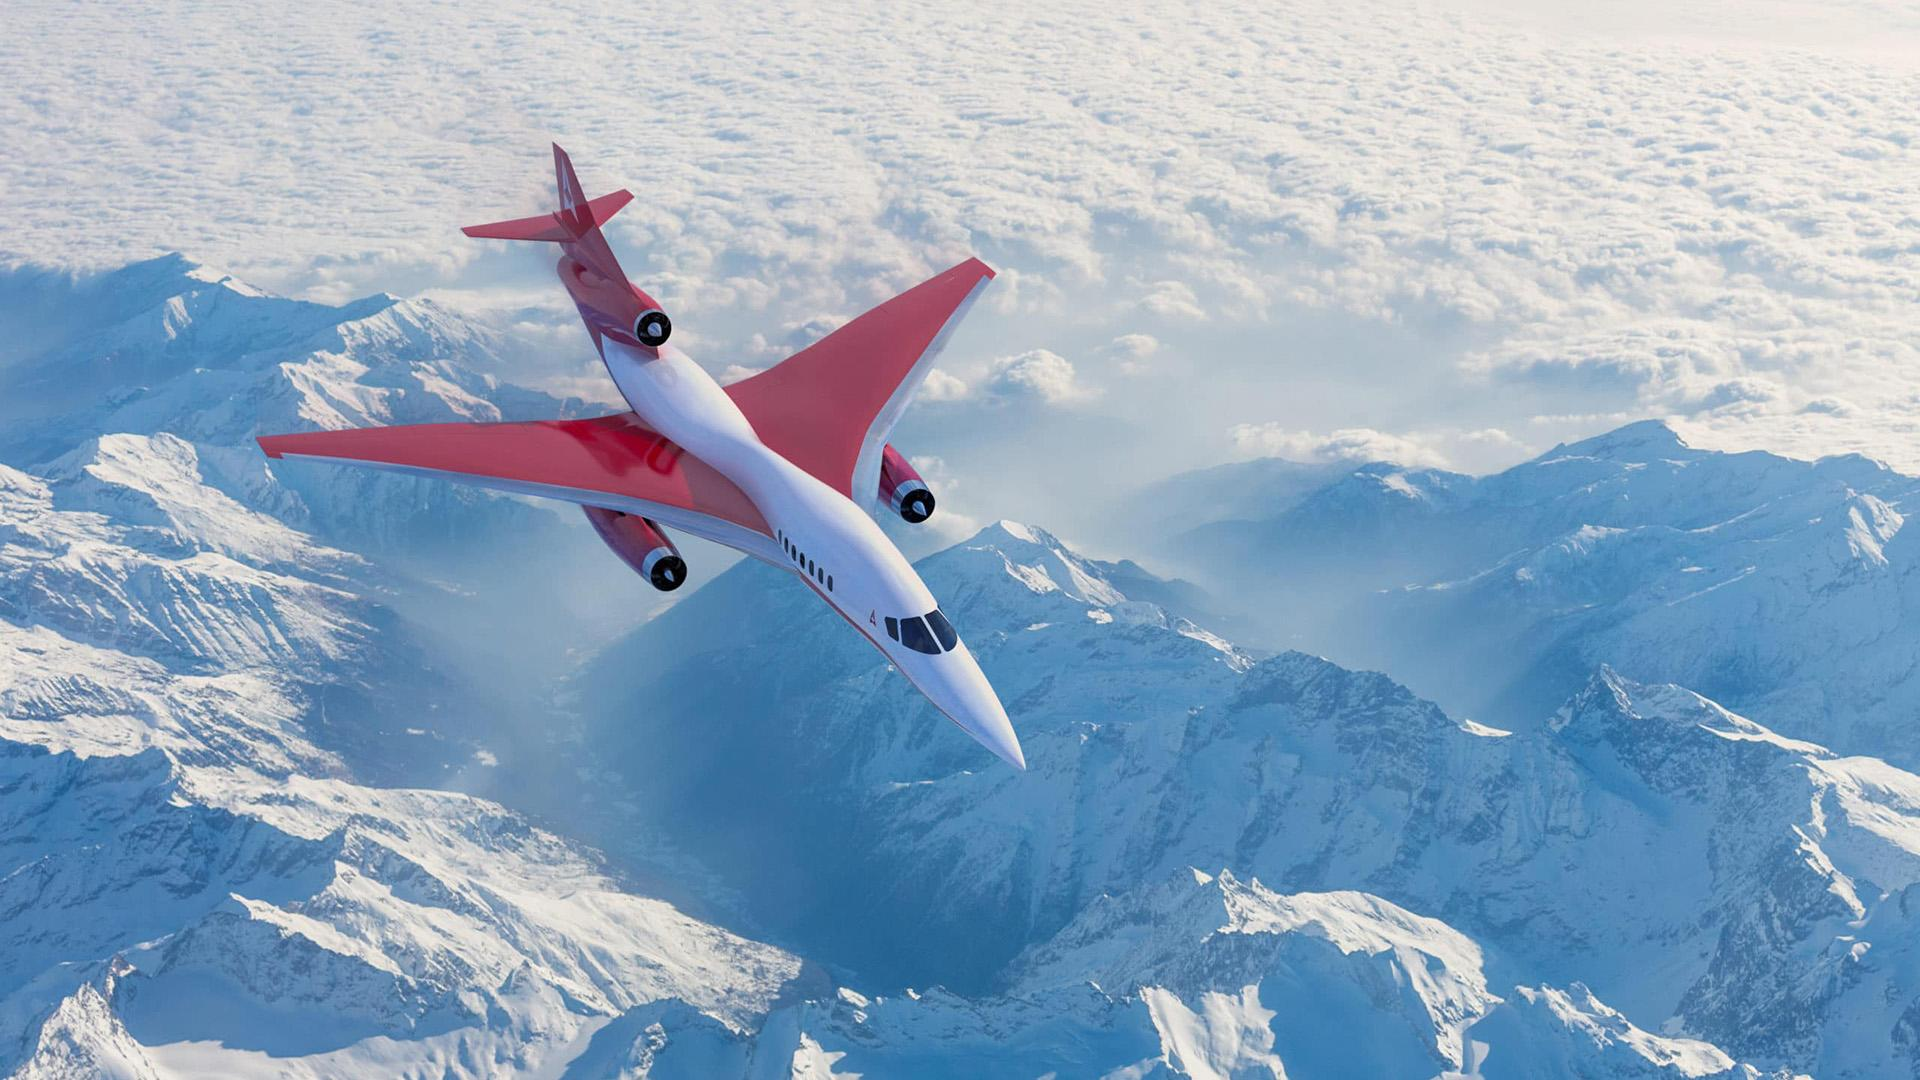 Planned Aerion Supersonic business jet